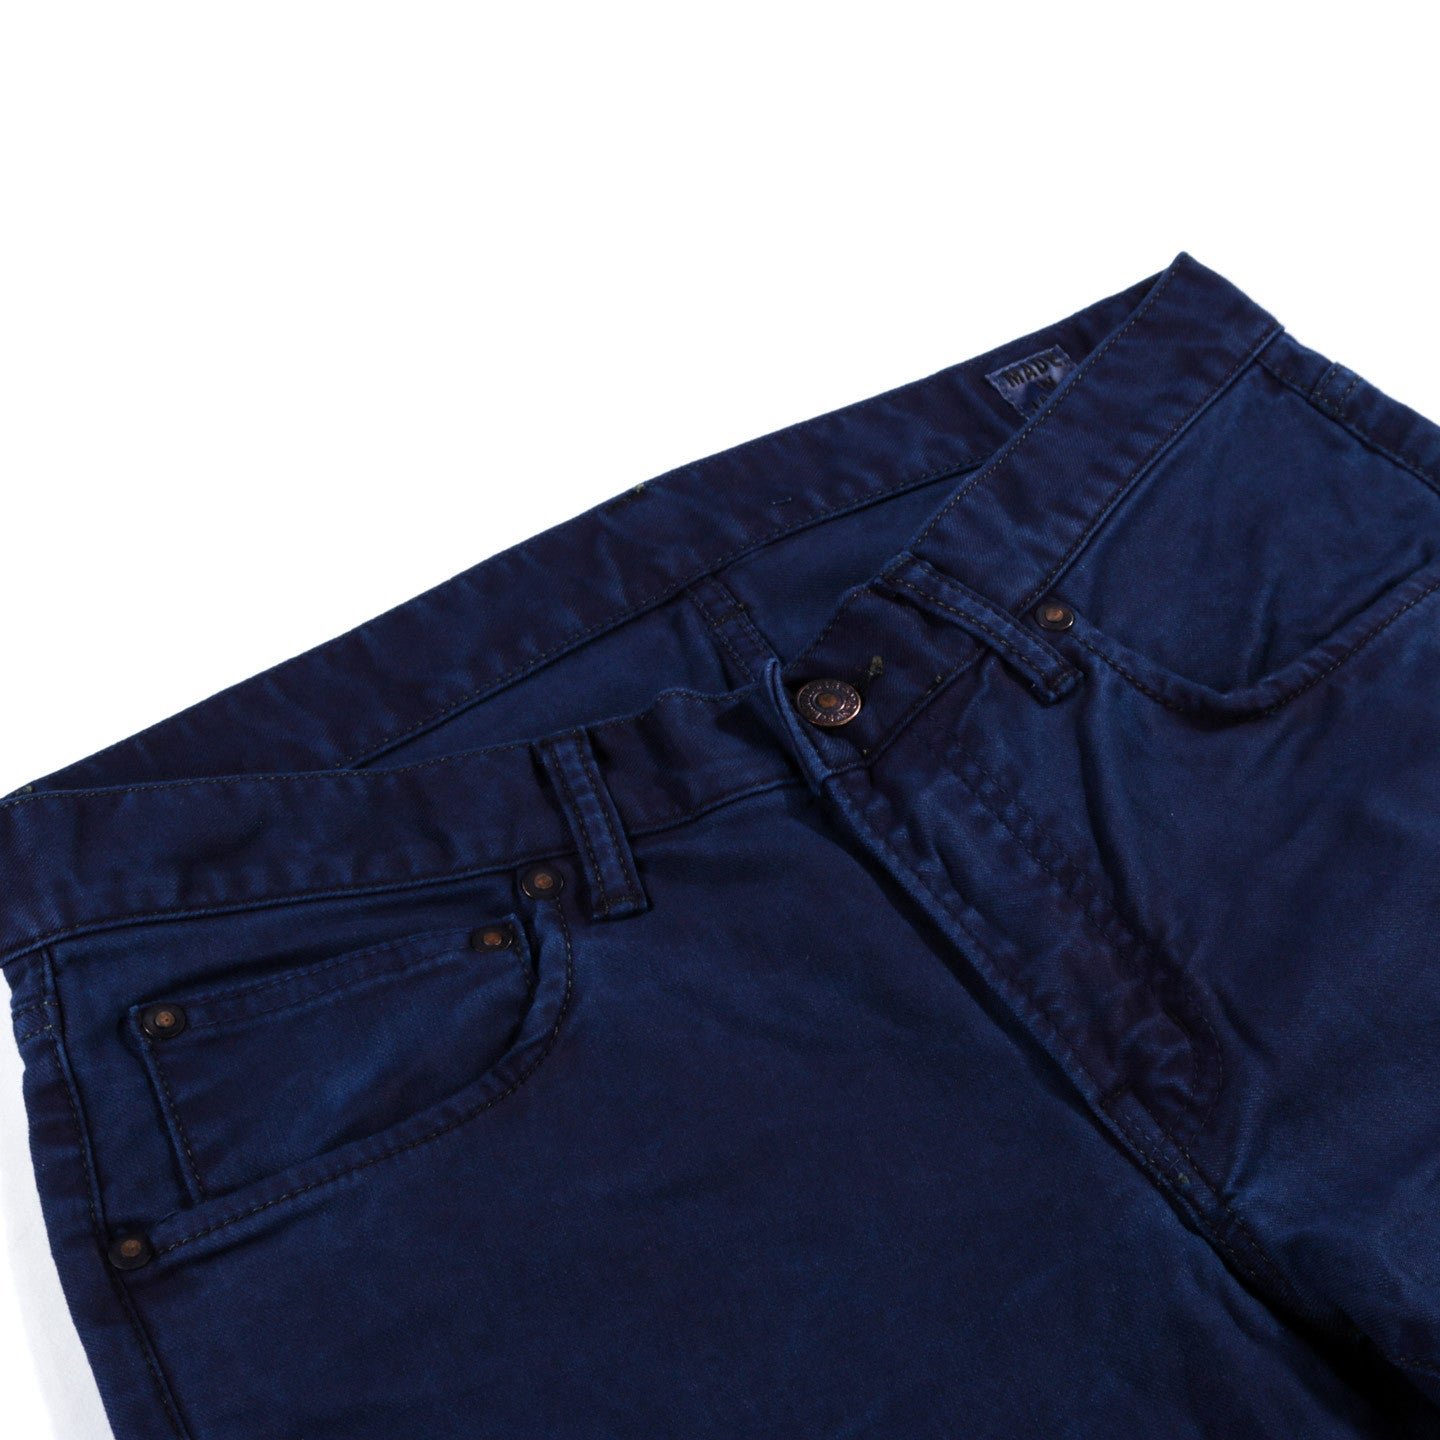 BLUE BLUE JAPAN STRETCH TWILL HAND DYED JEAN